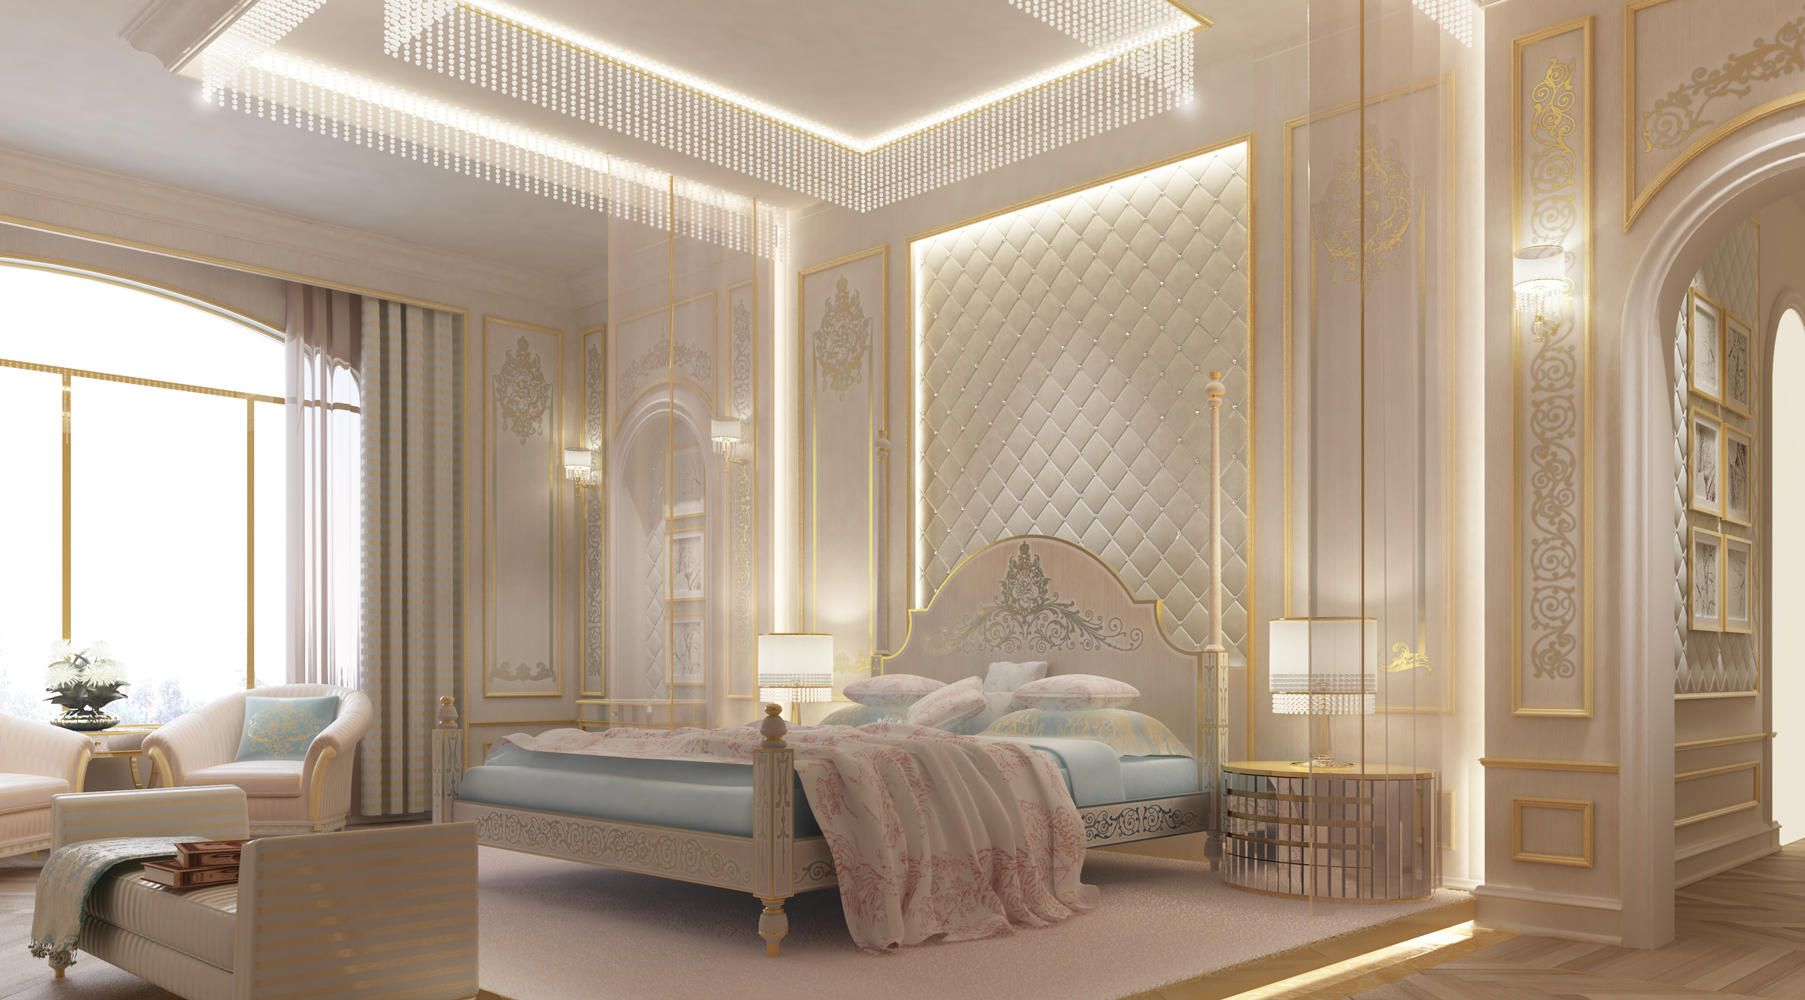 Dubai bedroom bedroom design abu dhabi d for Home interior design company